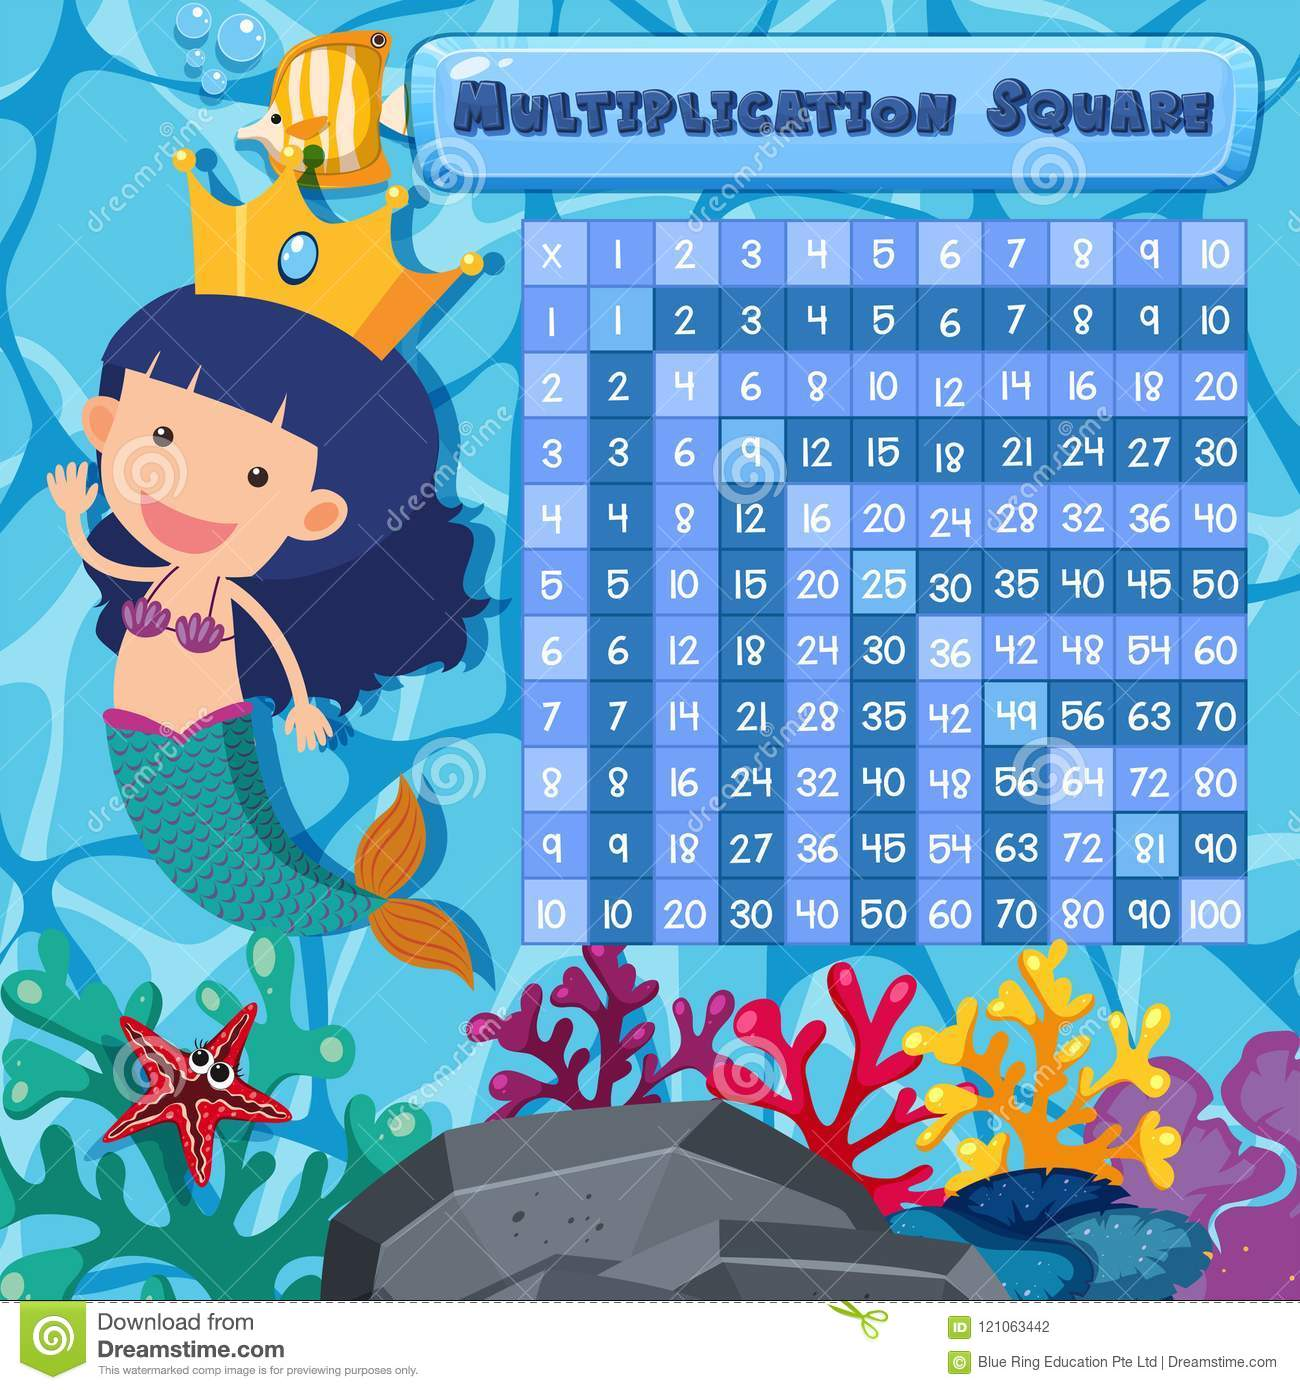 Underwater Math Multiplication Square Stock Vector - Illustration of ...